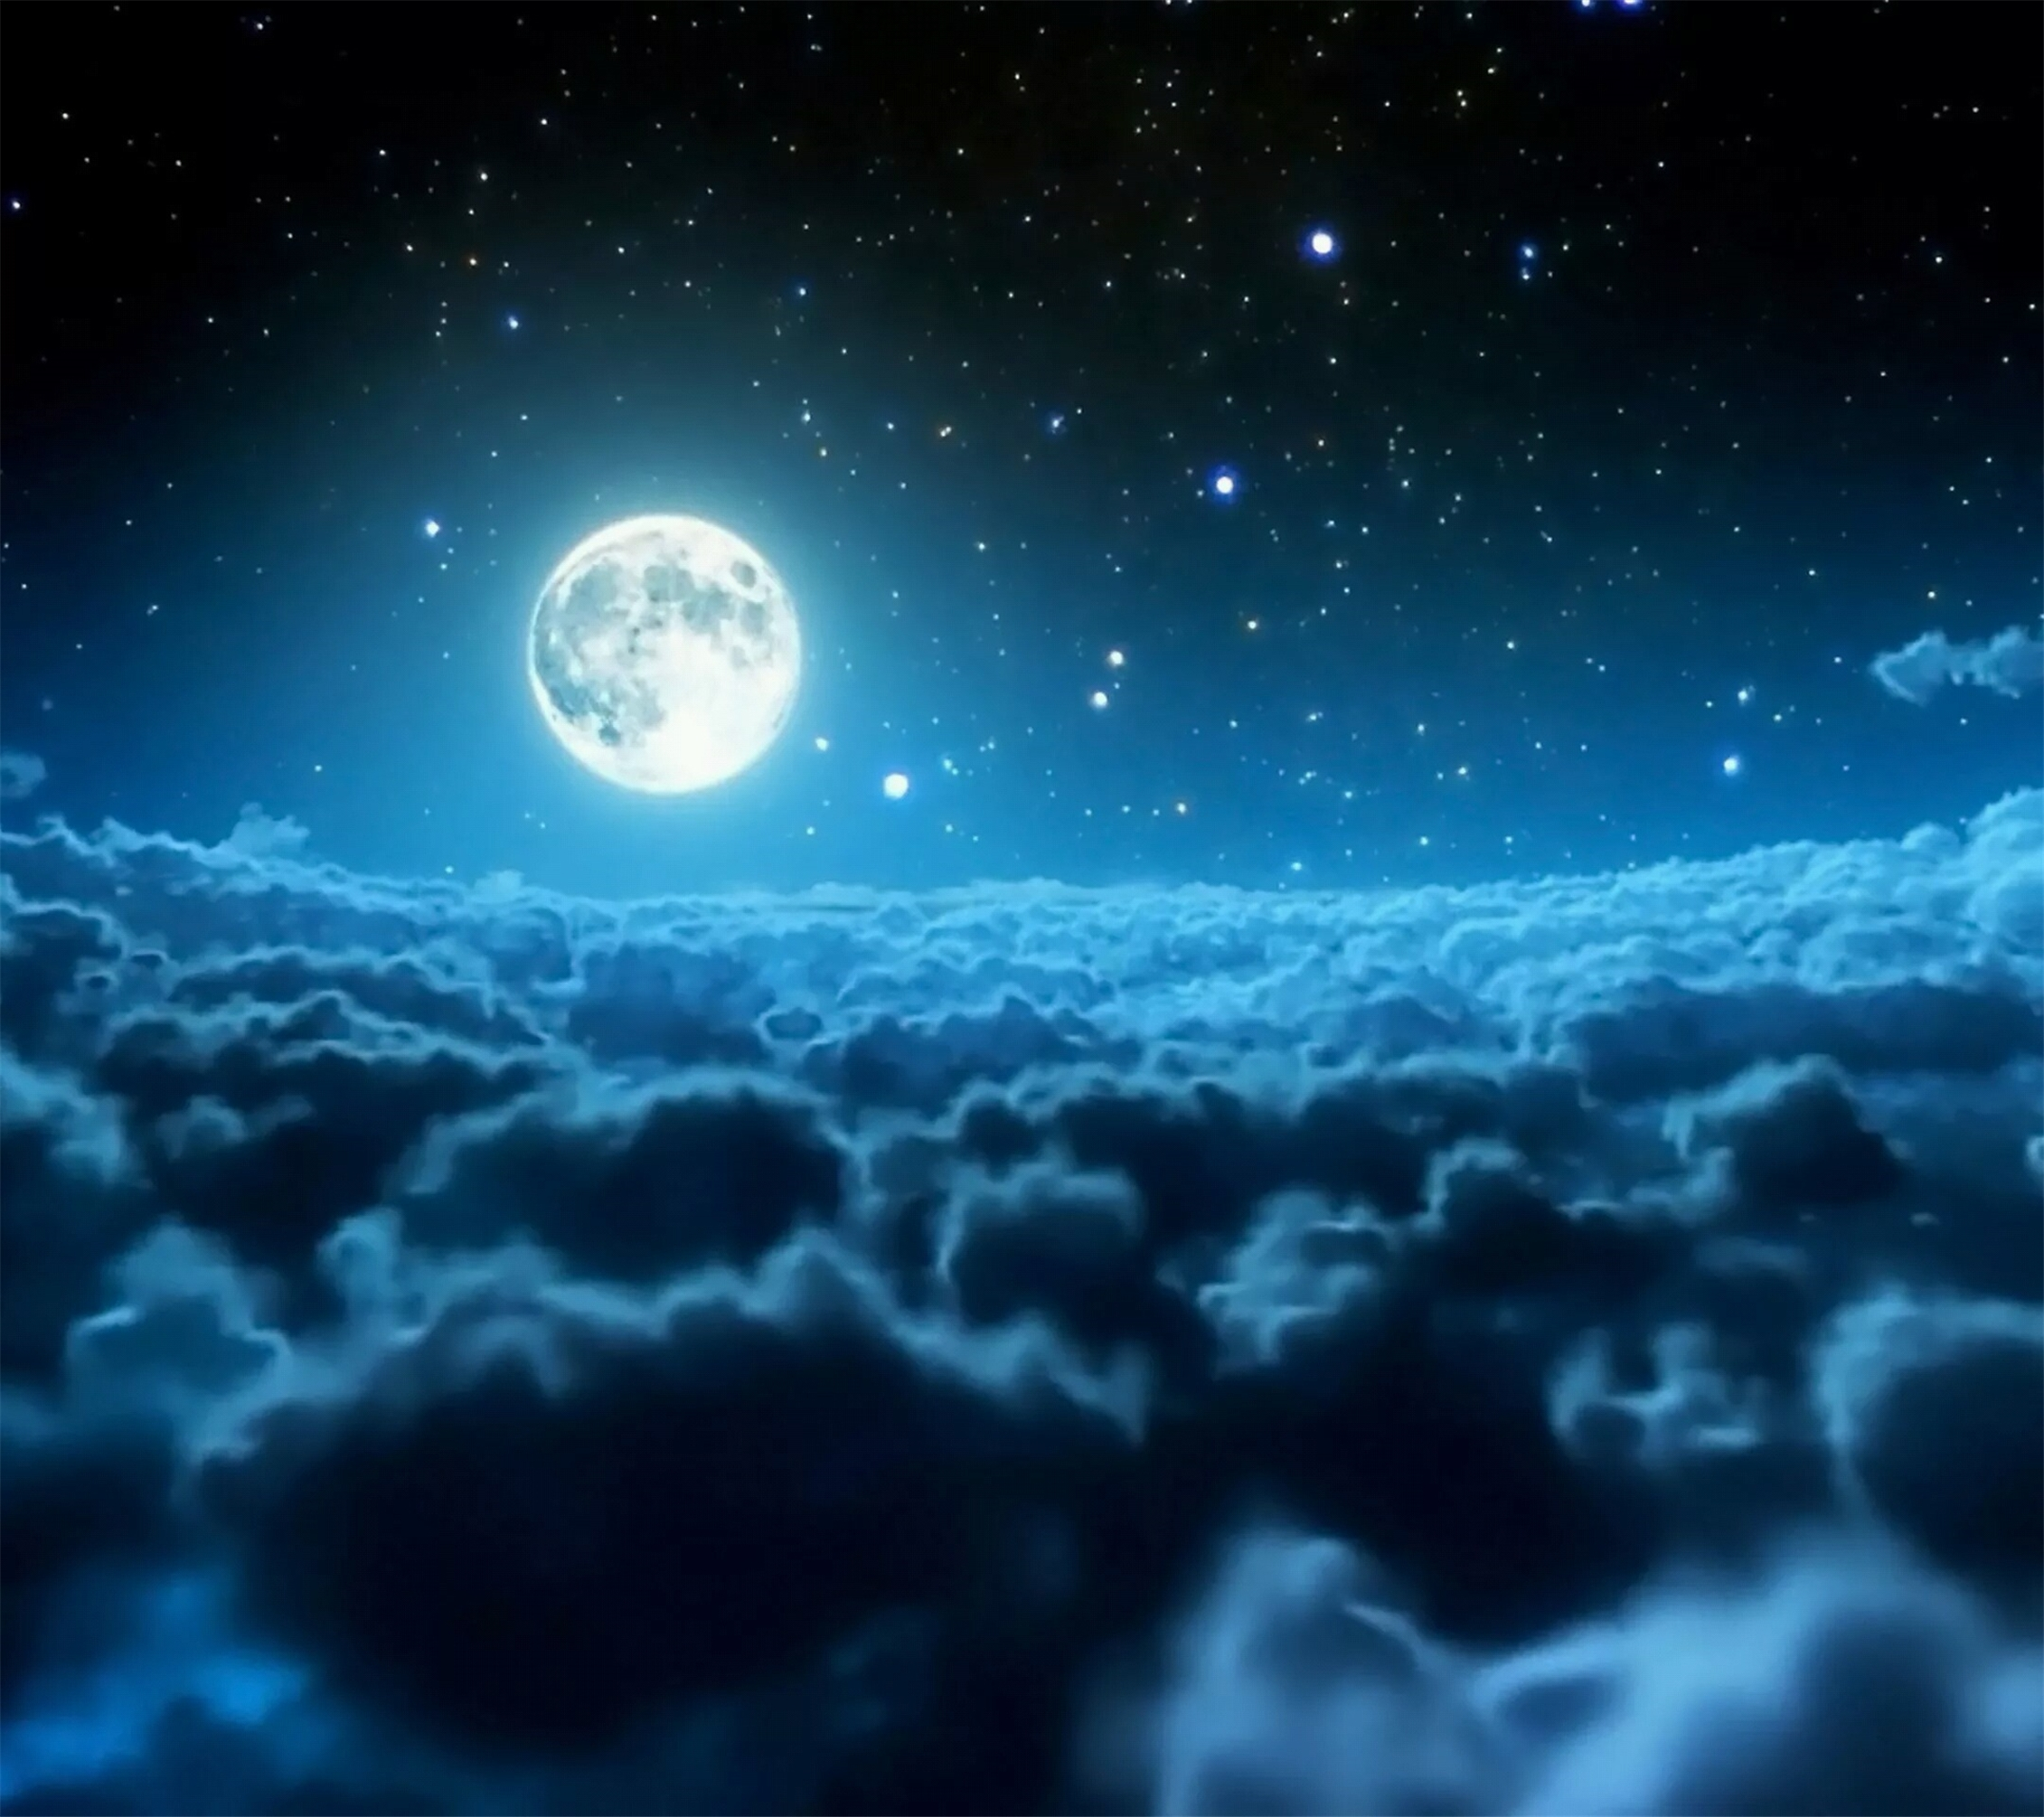 Romantic Moonlight Background, Romantic, Moonlight, Photography Background Image For